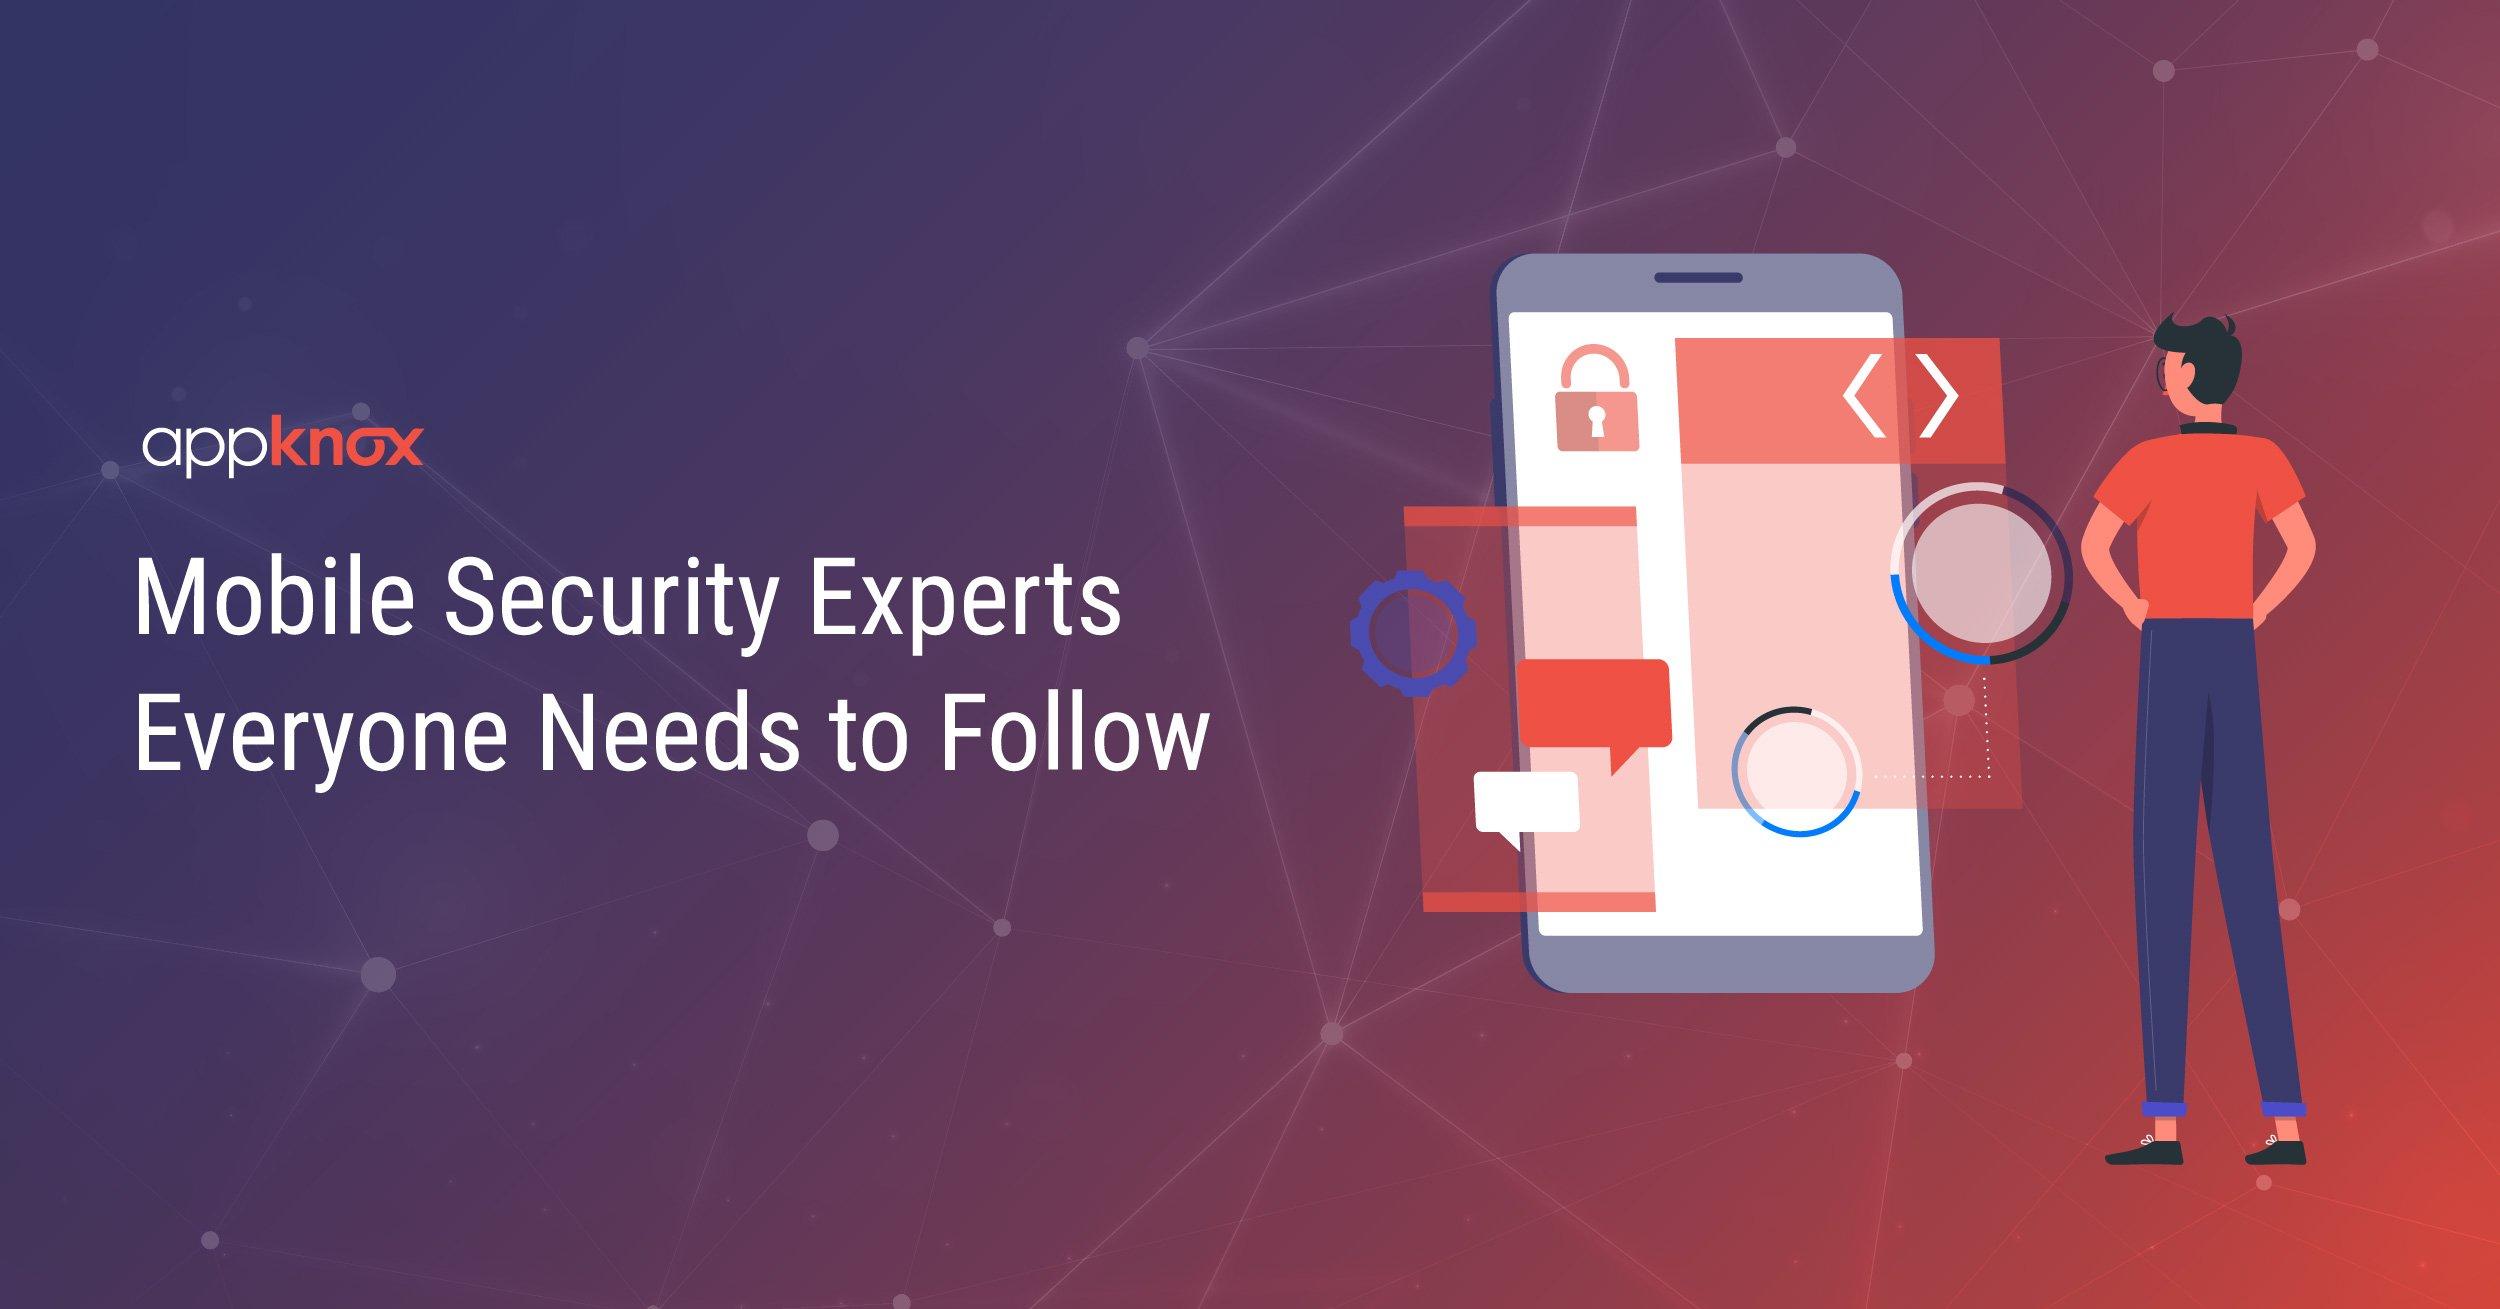 Mobile security experts everyone should follow